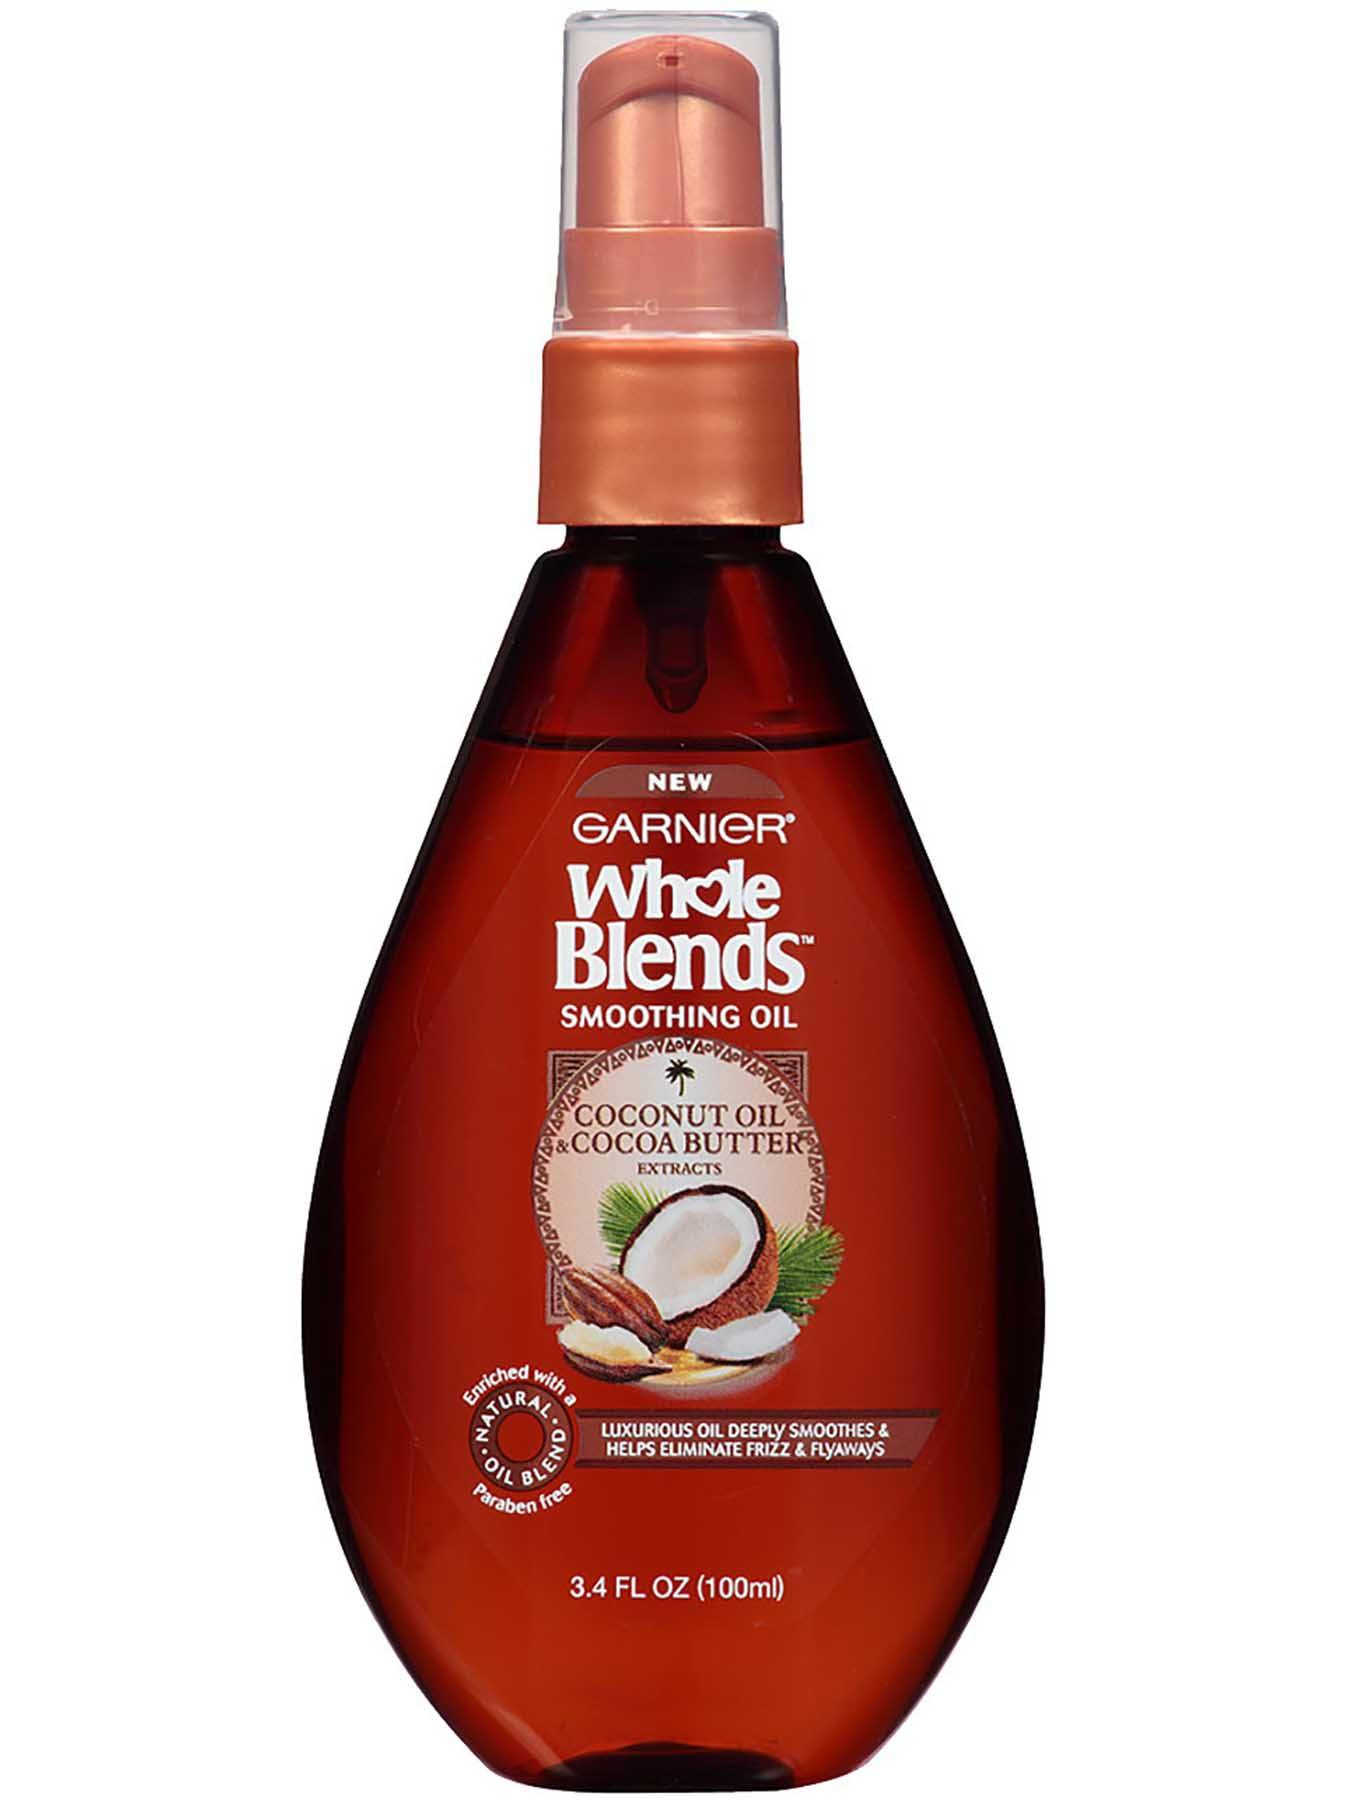 Image result for Garnier Whole Blends Smoothing Oil (coconut oil & cocoa butter)